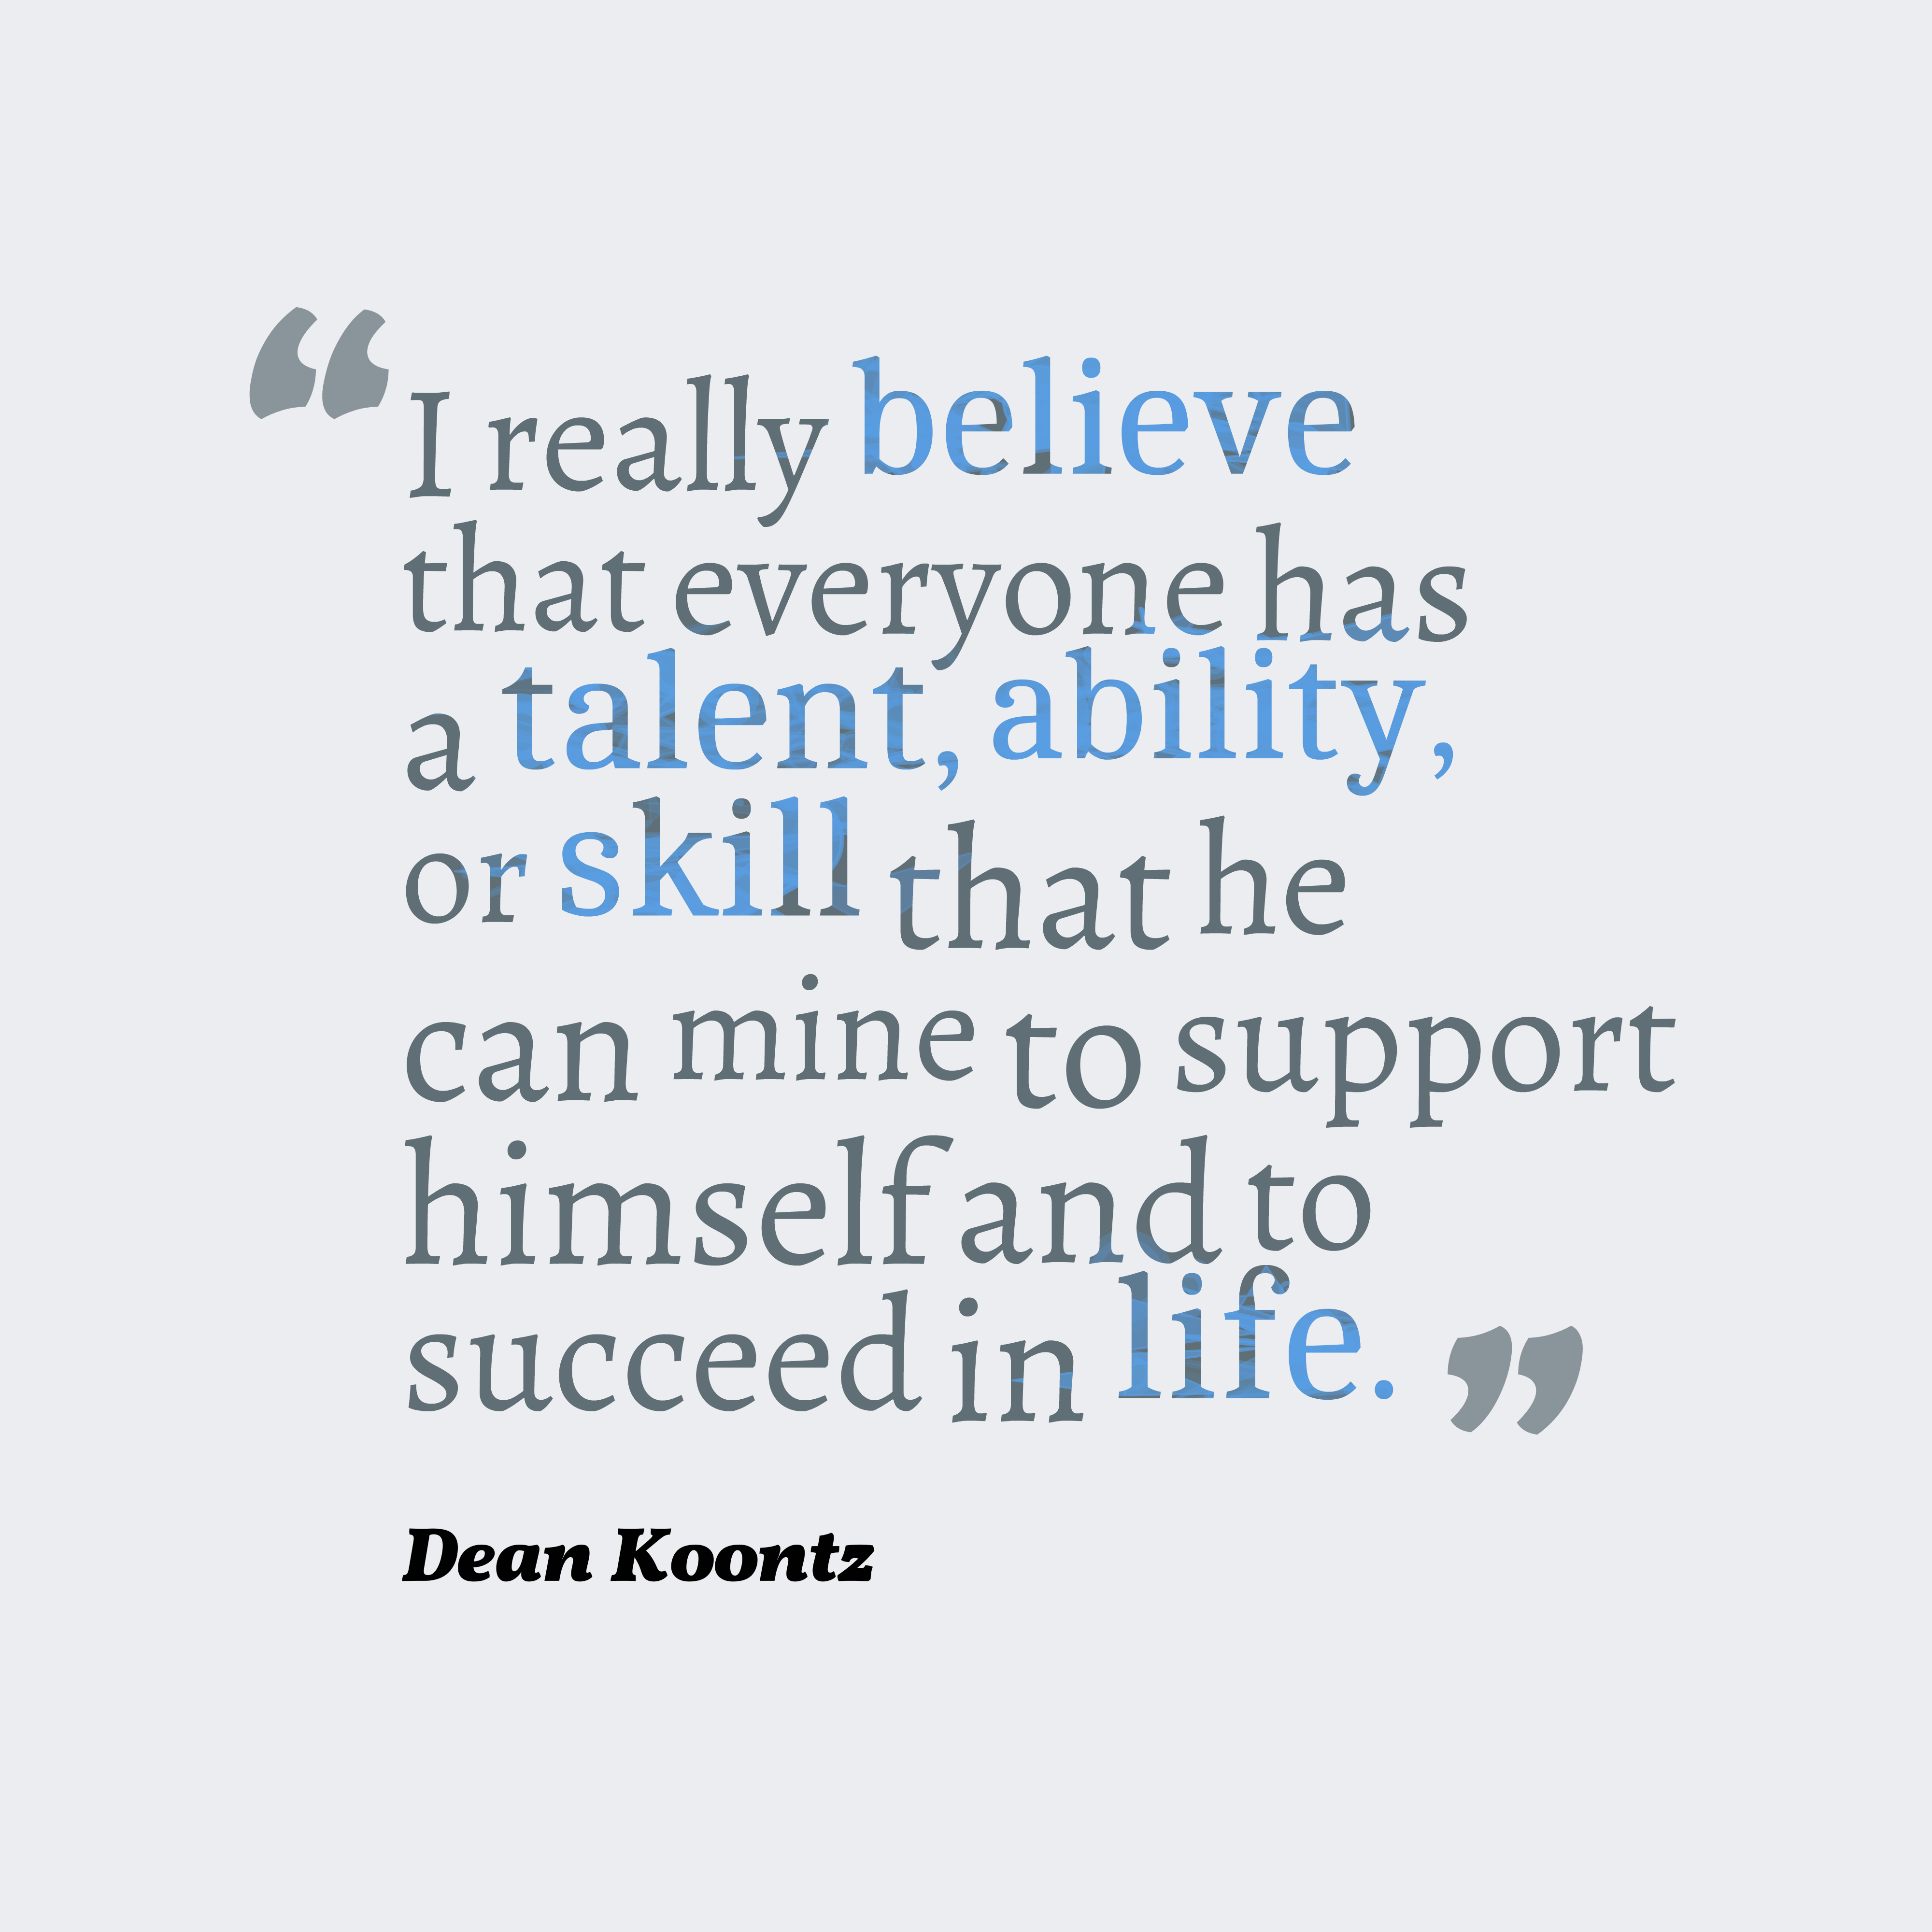 Dean Koontz Quote About Life